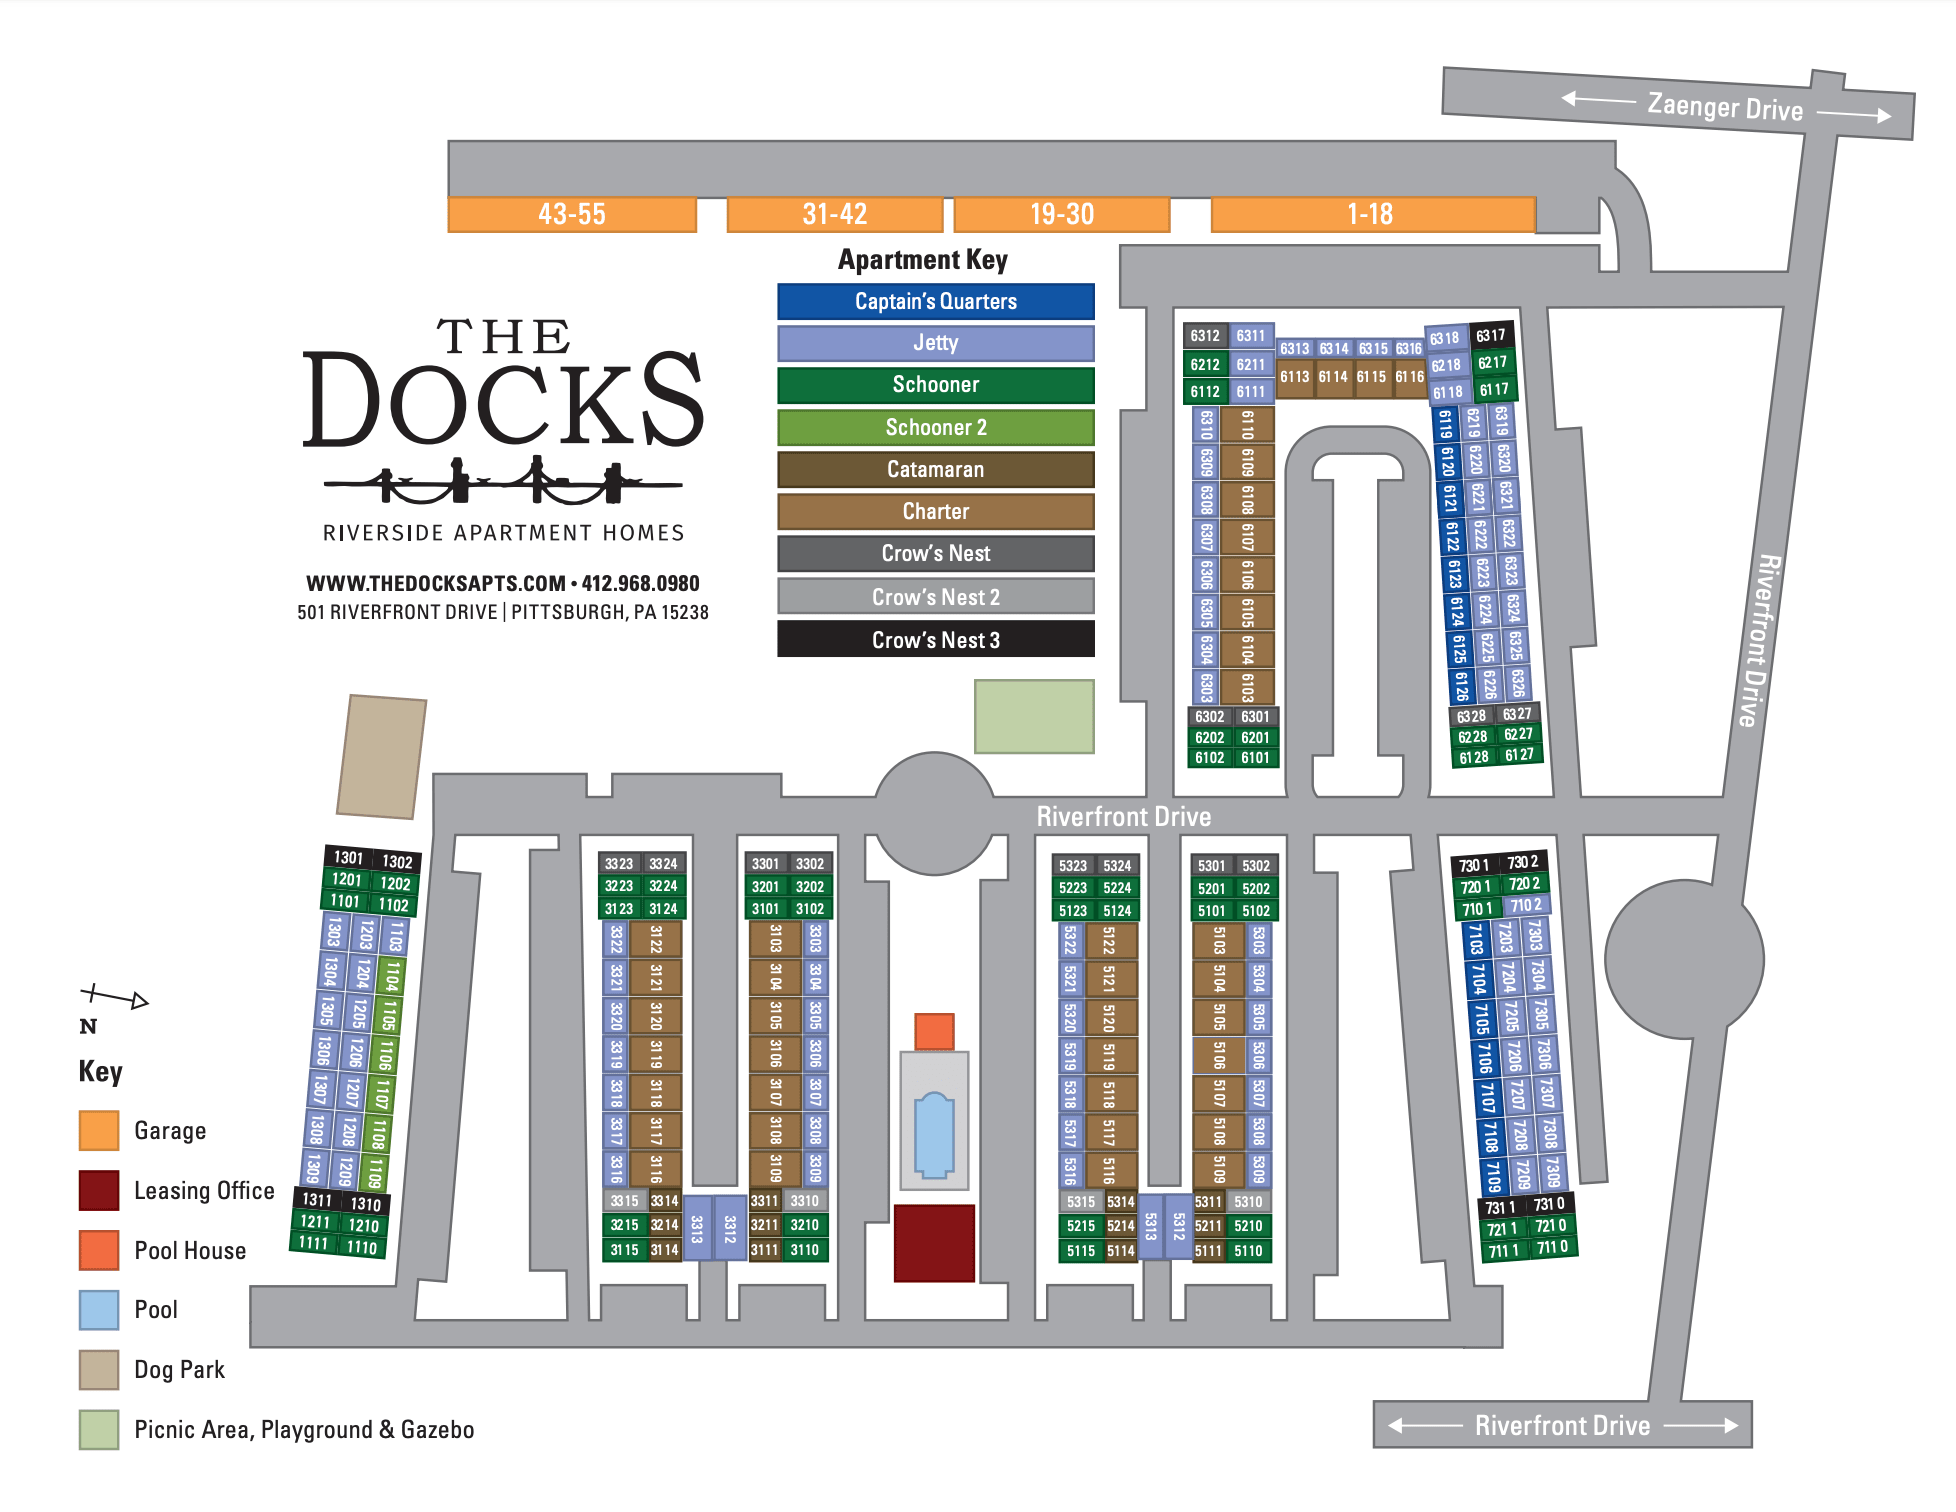 The Docks site map